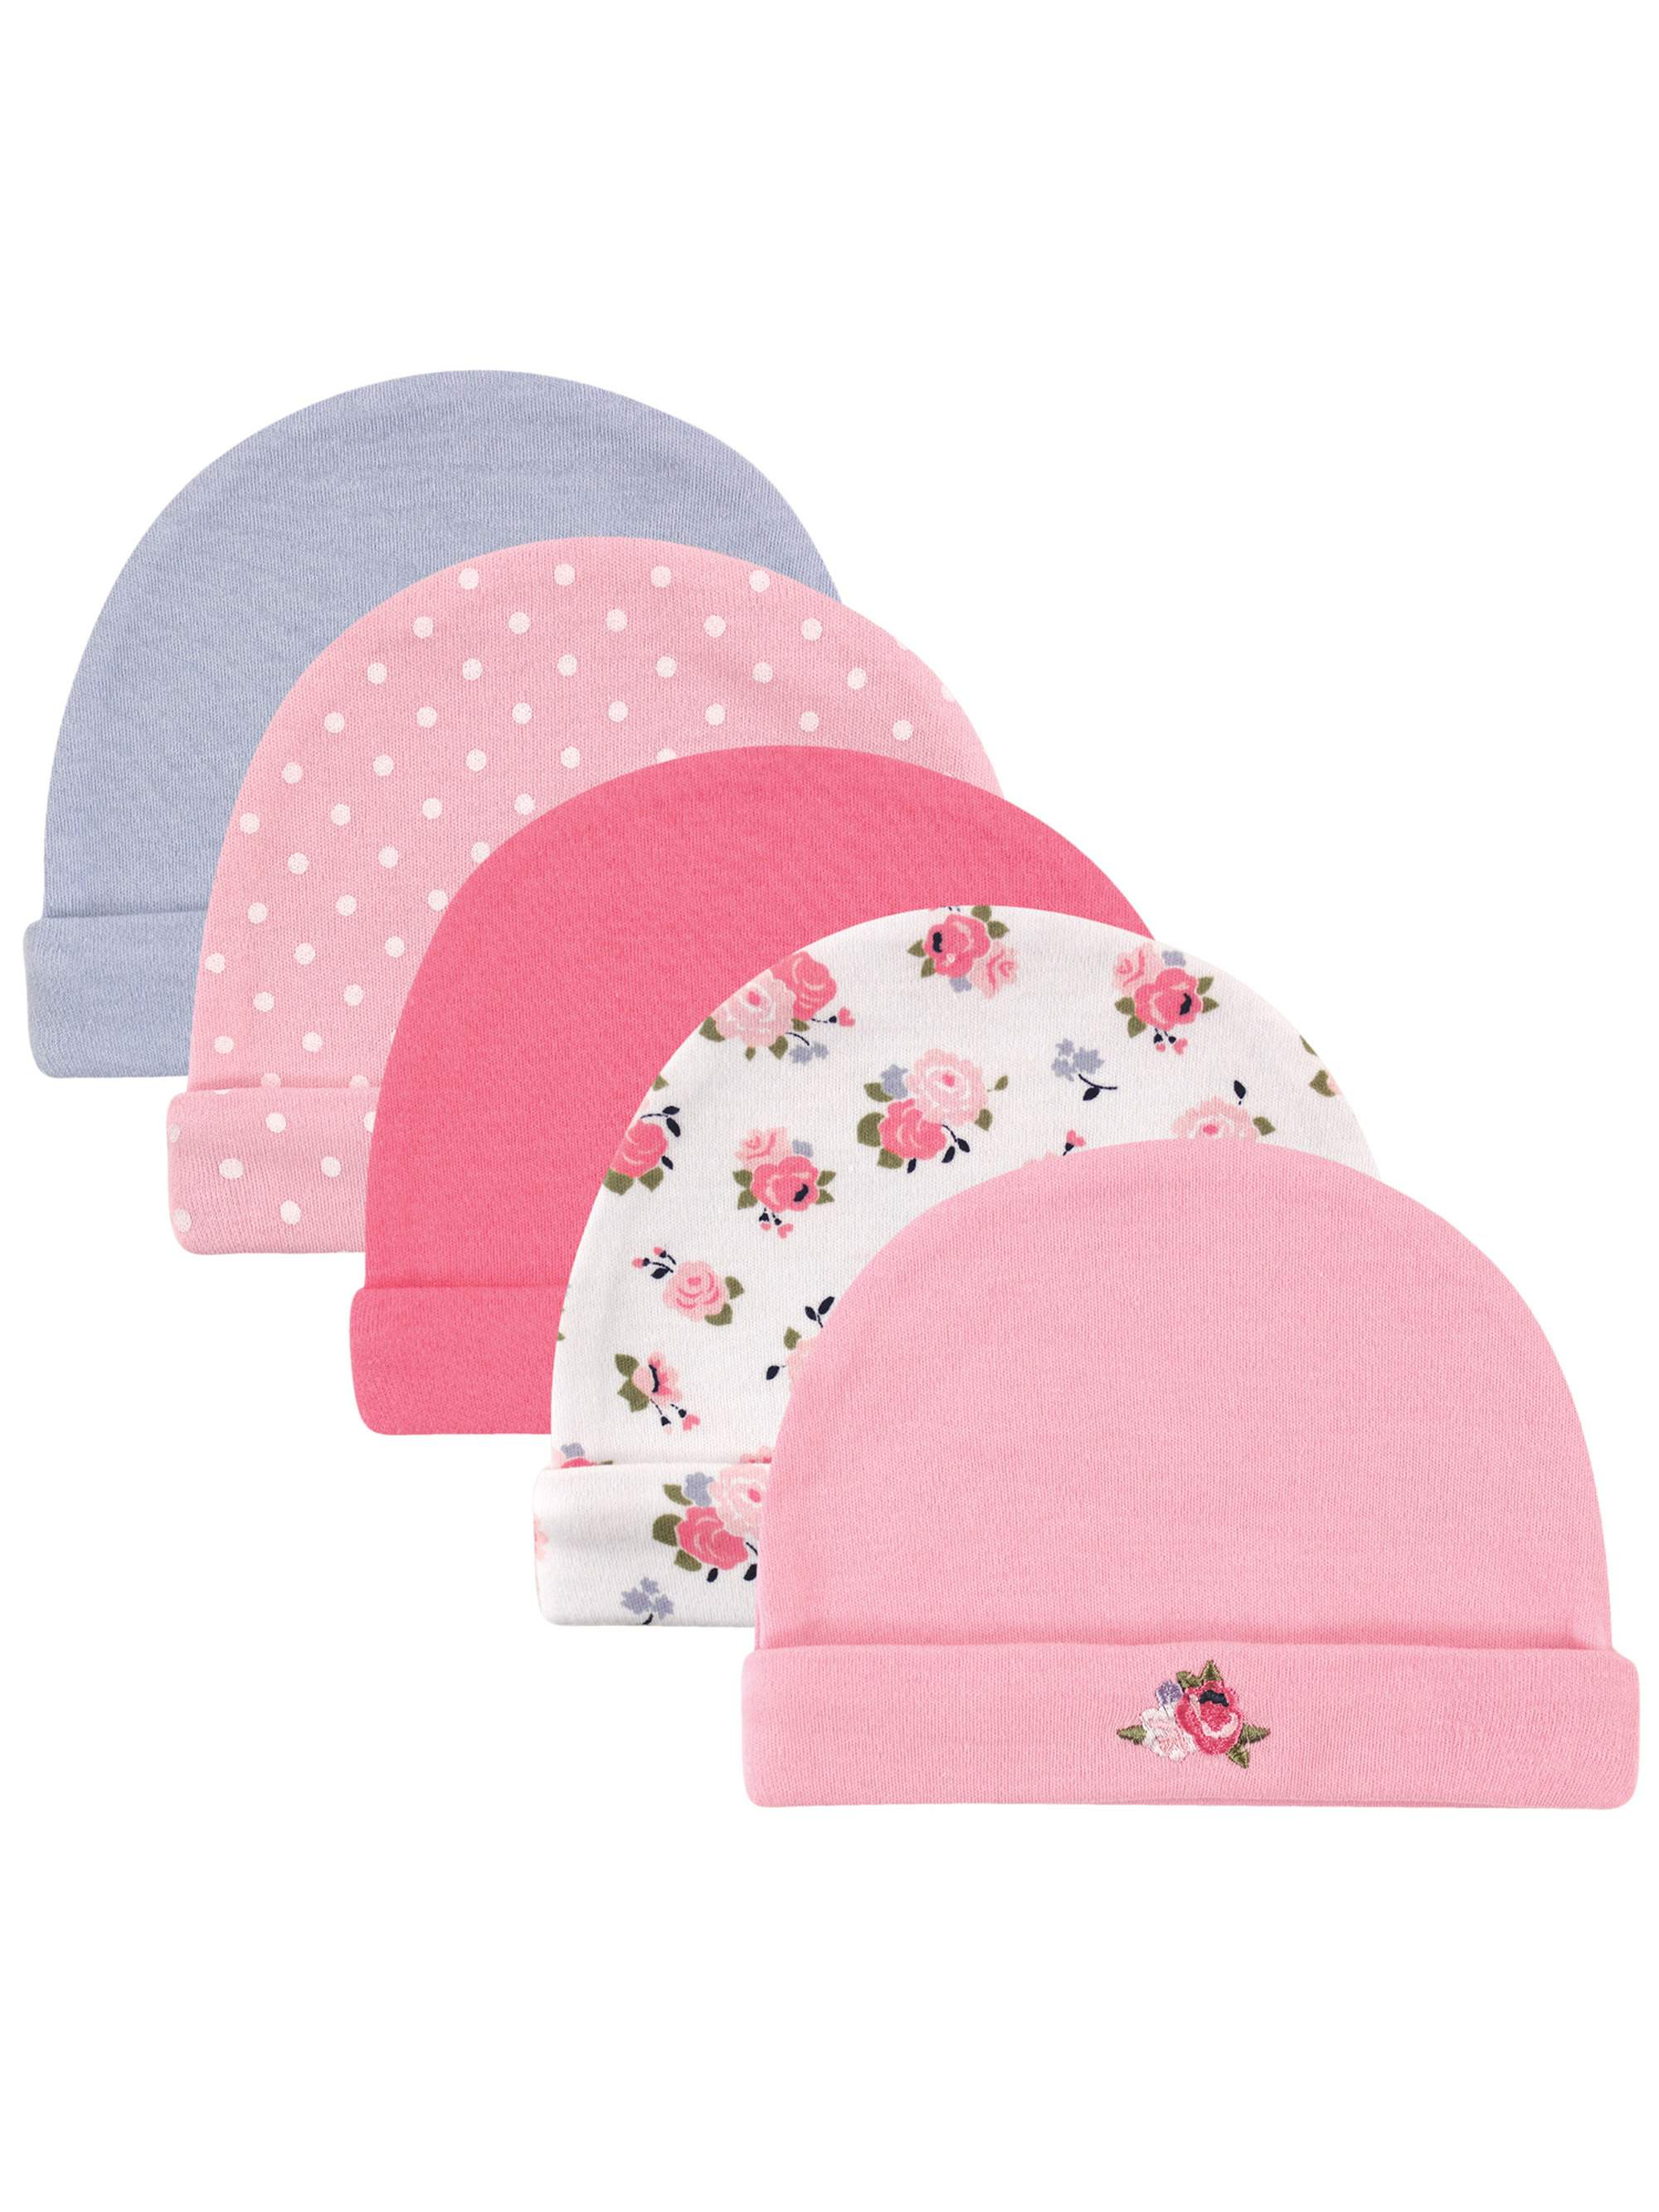 Luvable Friends - Baby Girl Caps 780128cb33b